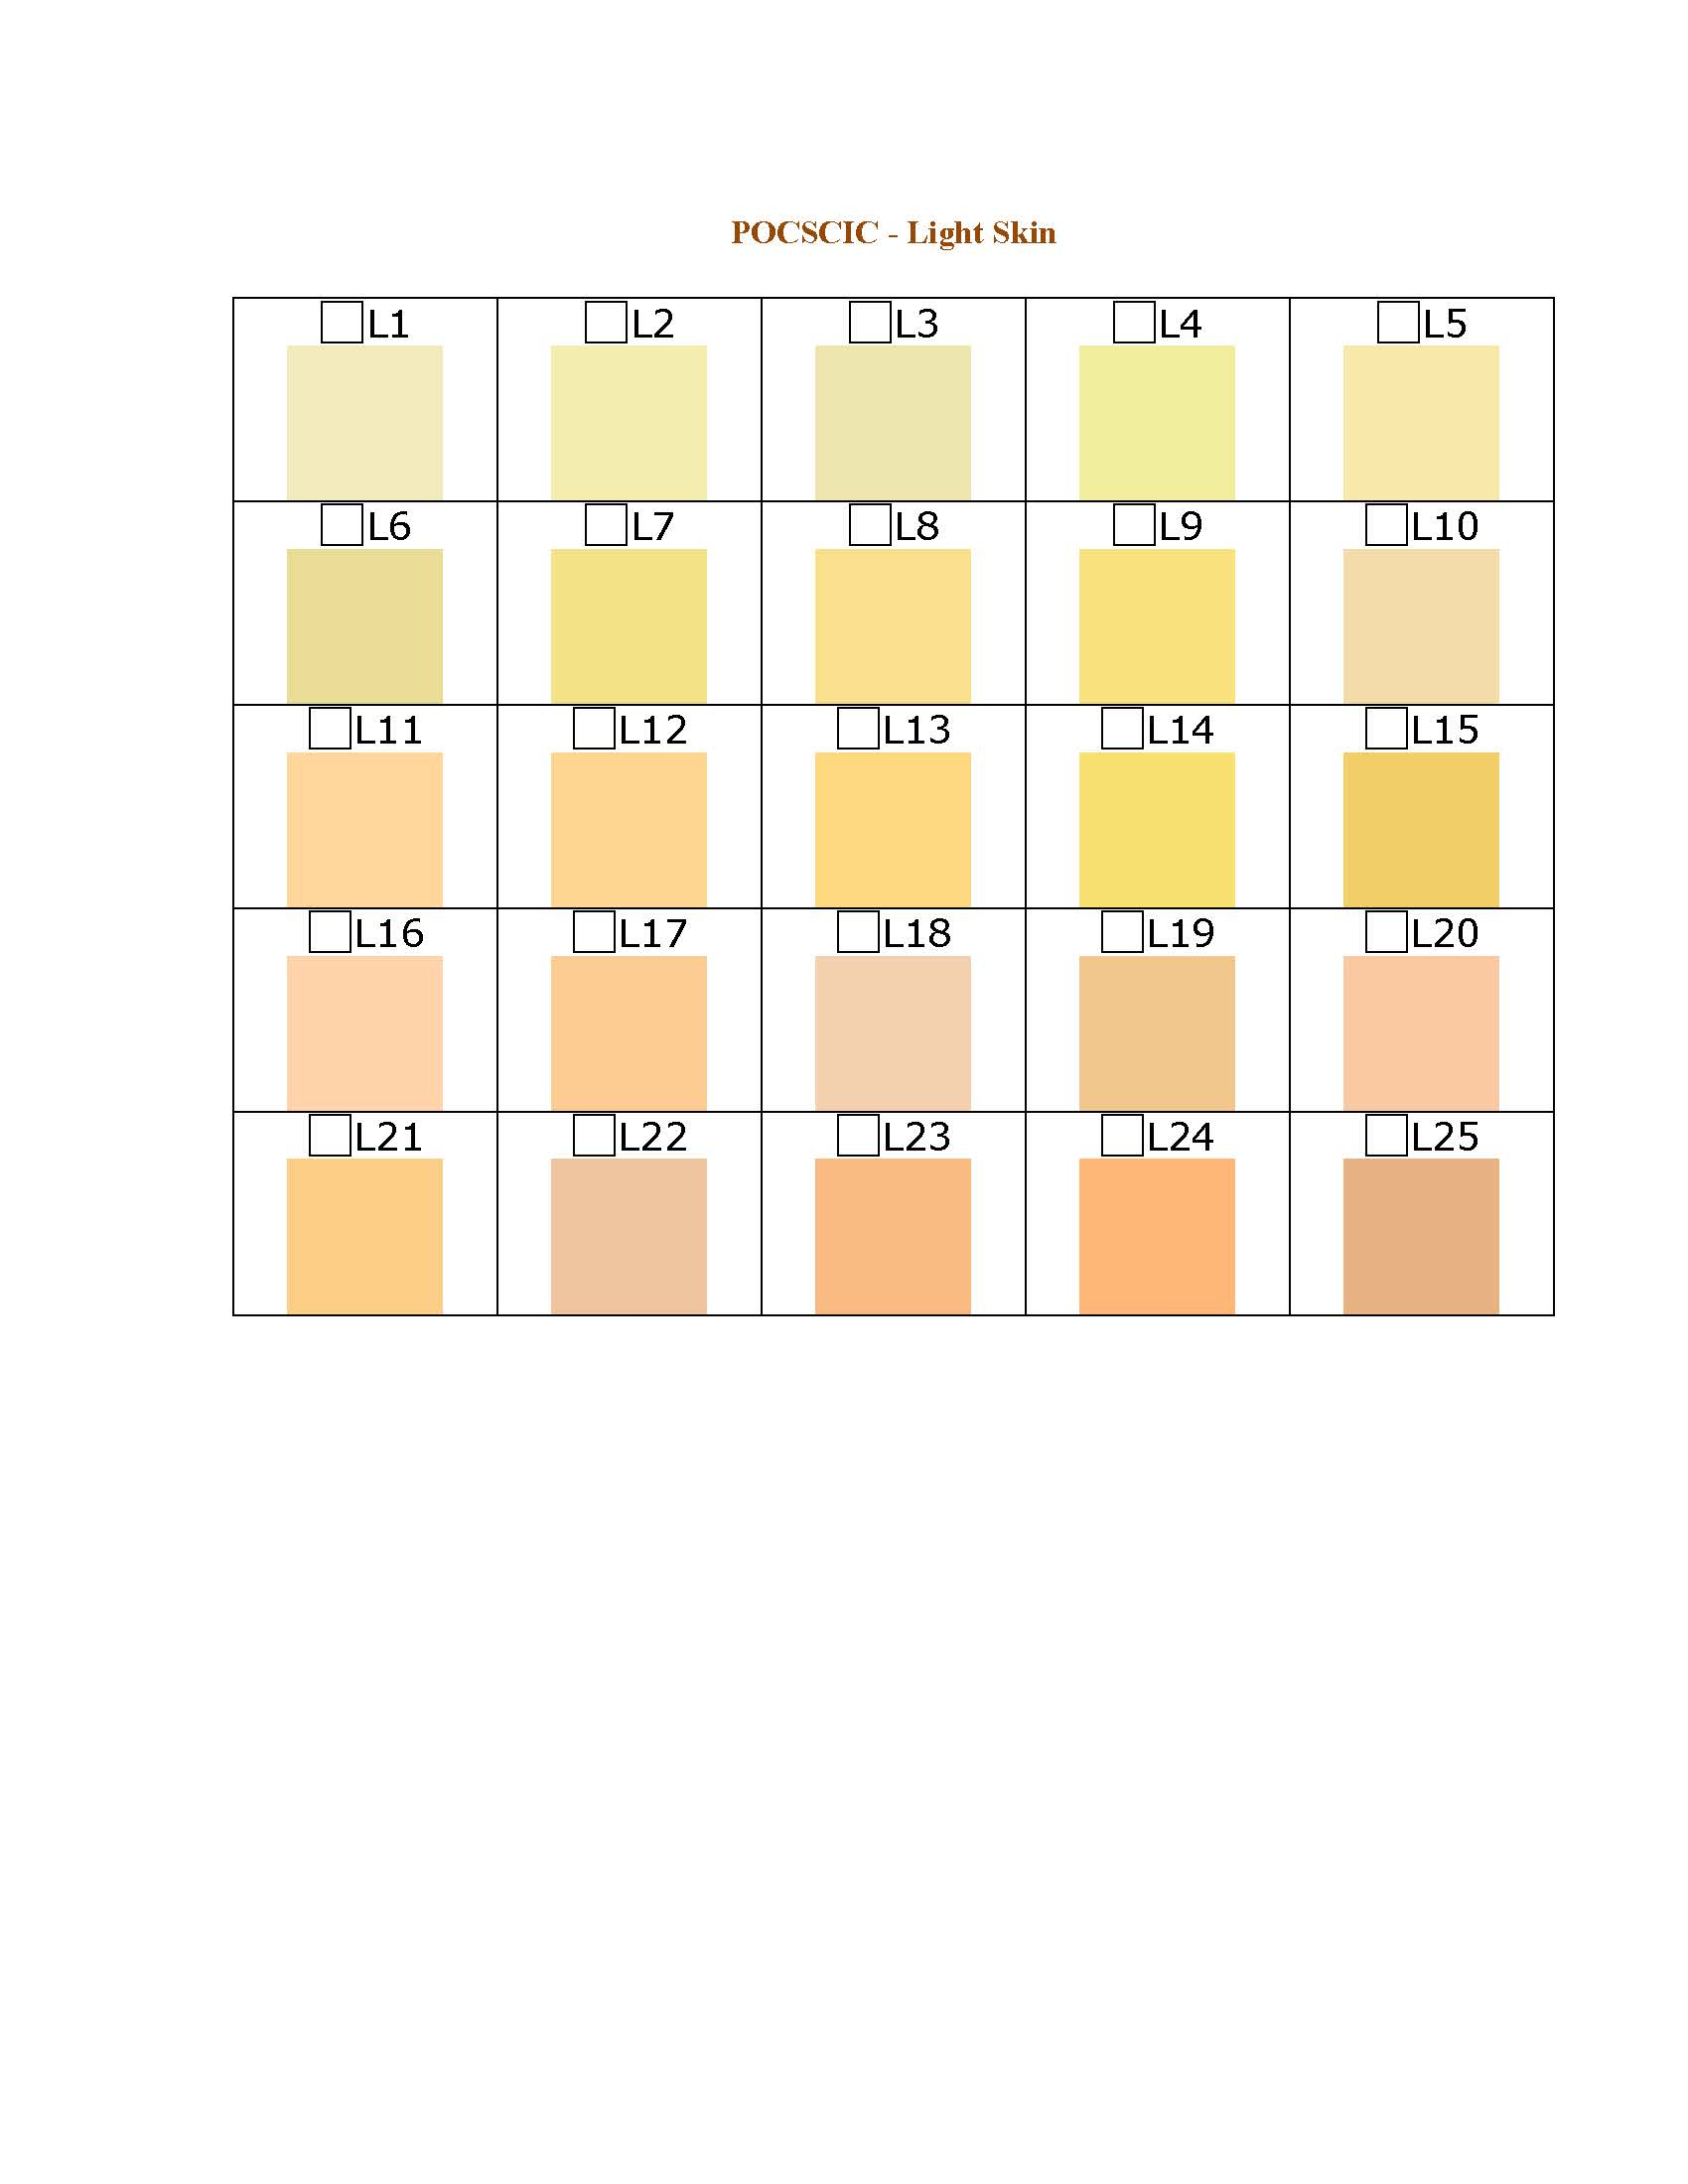 Light Skin Color.<br><br>Using the Light POCSCIC below, identify the color that represents your skin color and enter the code (I.E. L4) in Question No. 9.   (Colors will vary depending on the screen resolution/monitor)